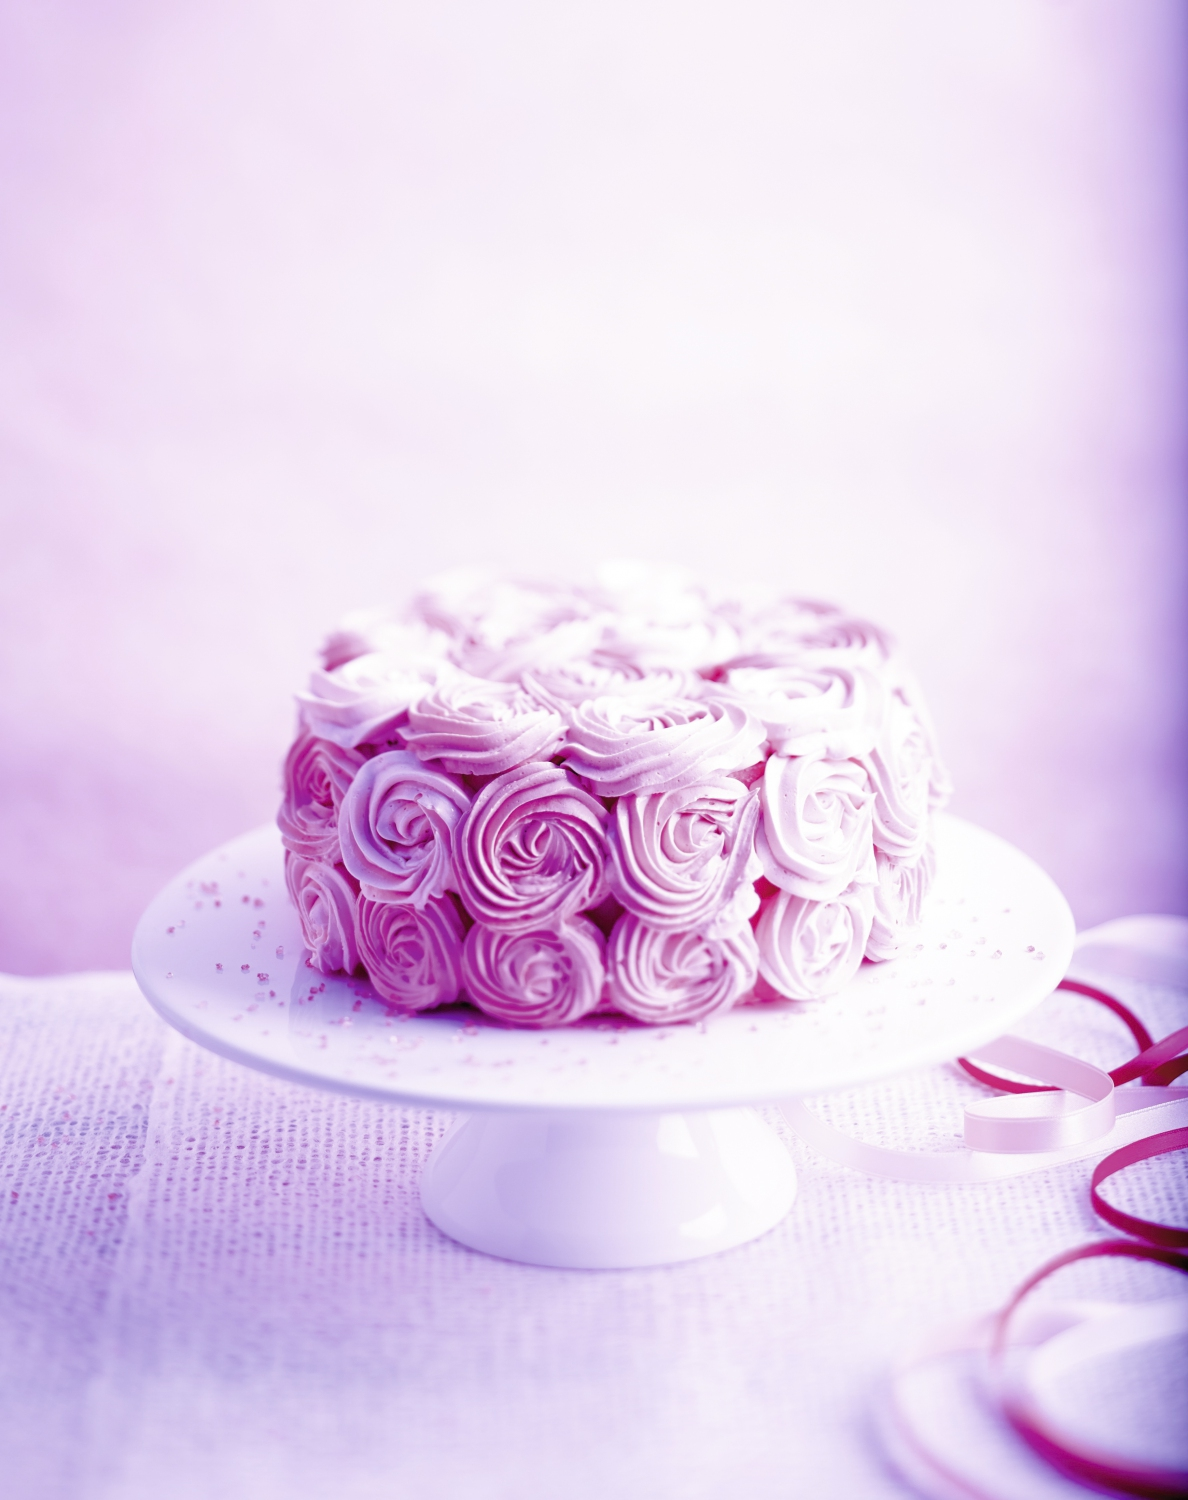 rose cake pour 6 personnes recettes elle table. Black Bedroom Furniture Sets. Home Design Ideas